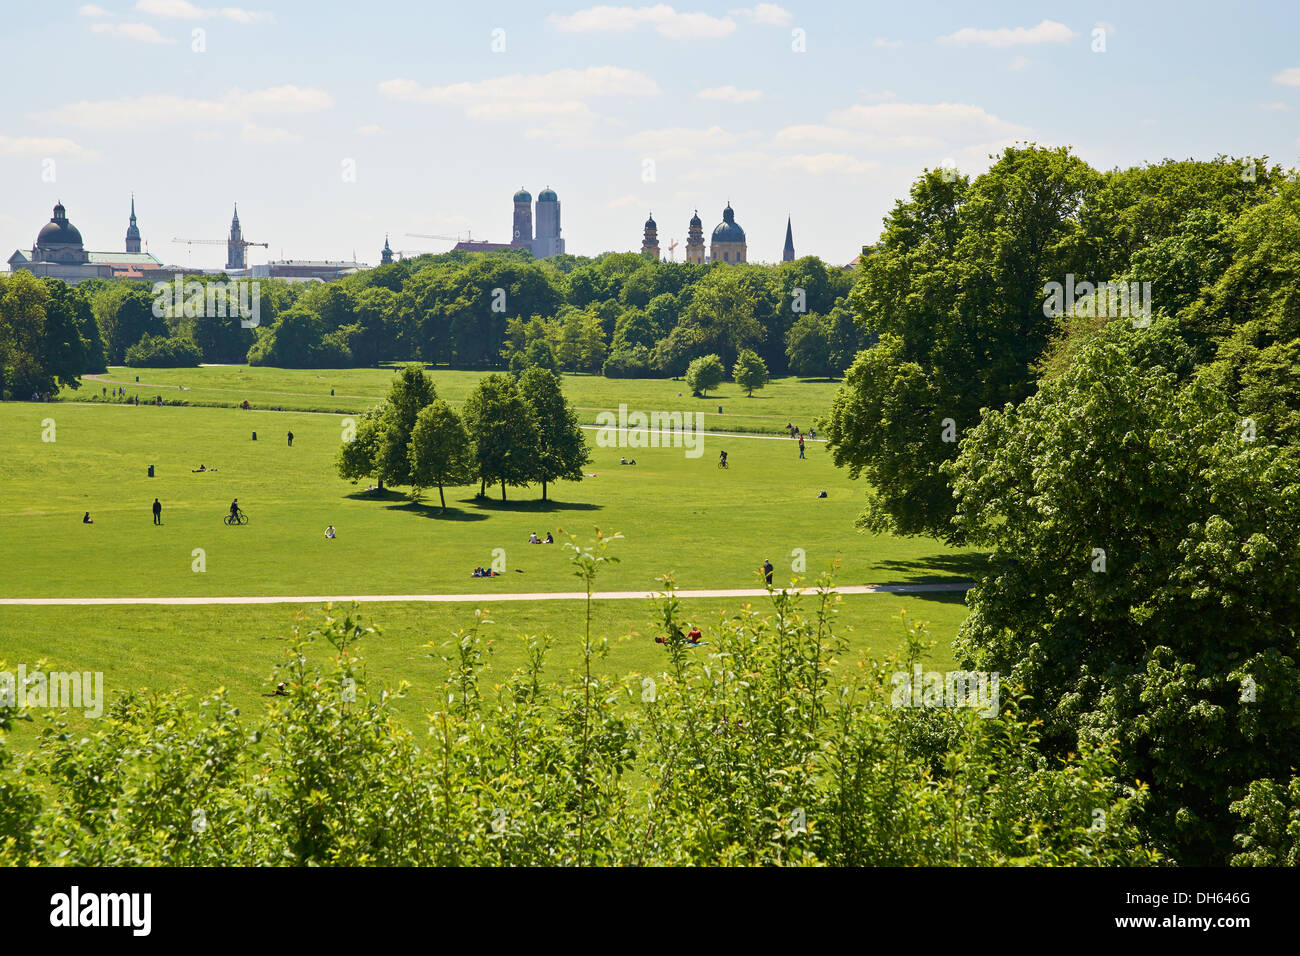 View over the Englischer Garten park - Stock Image